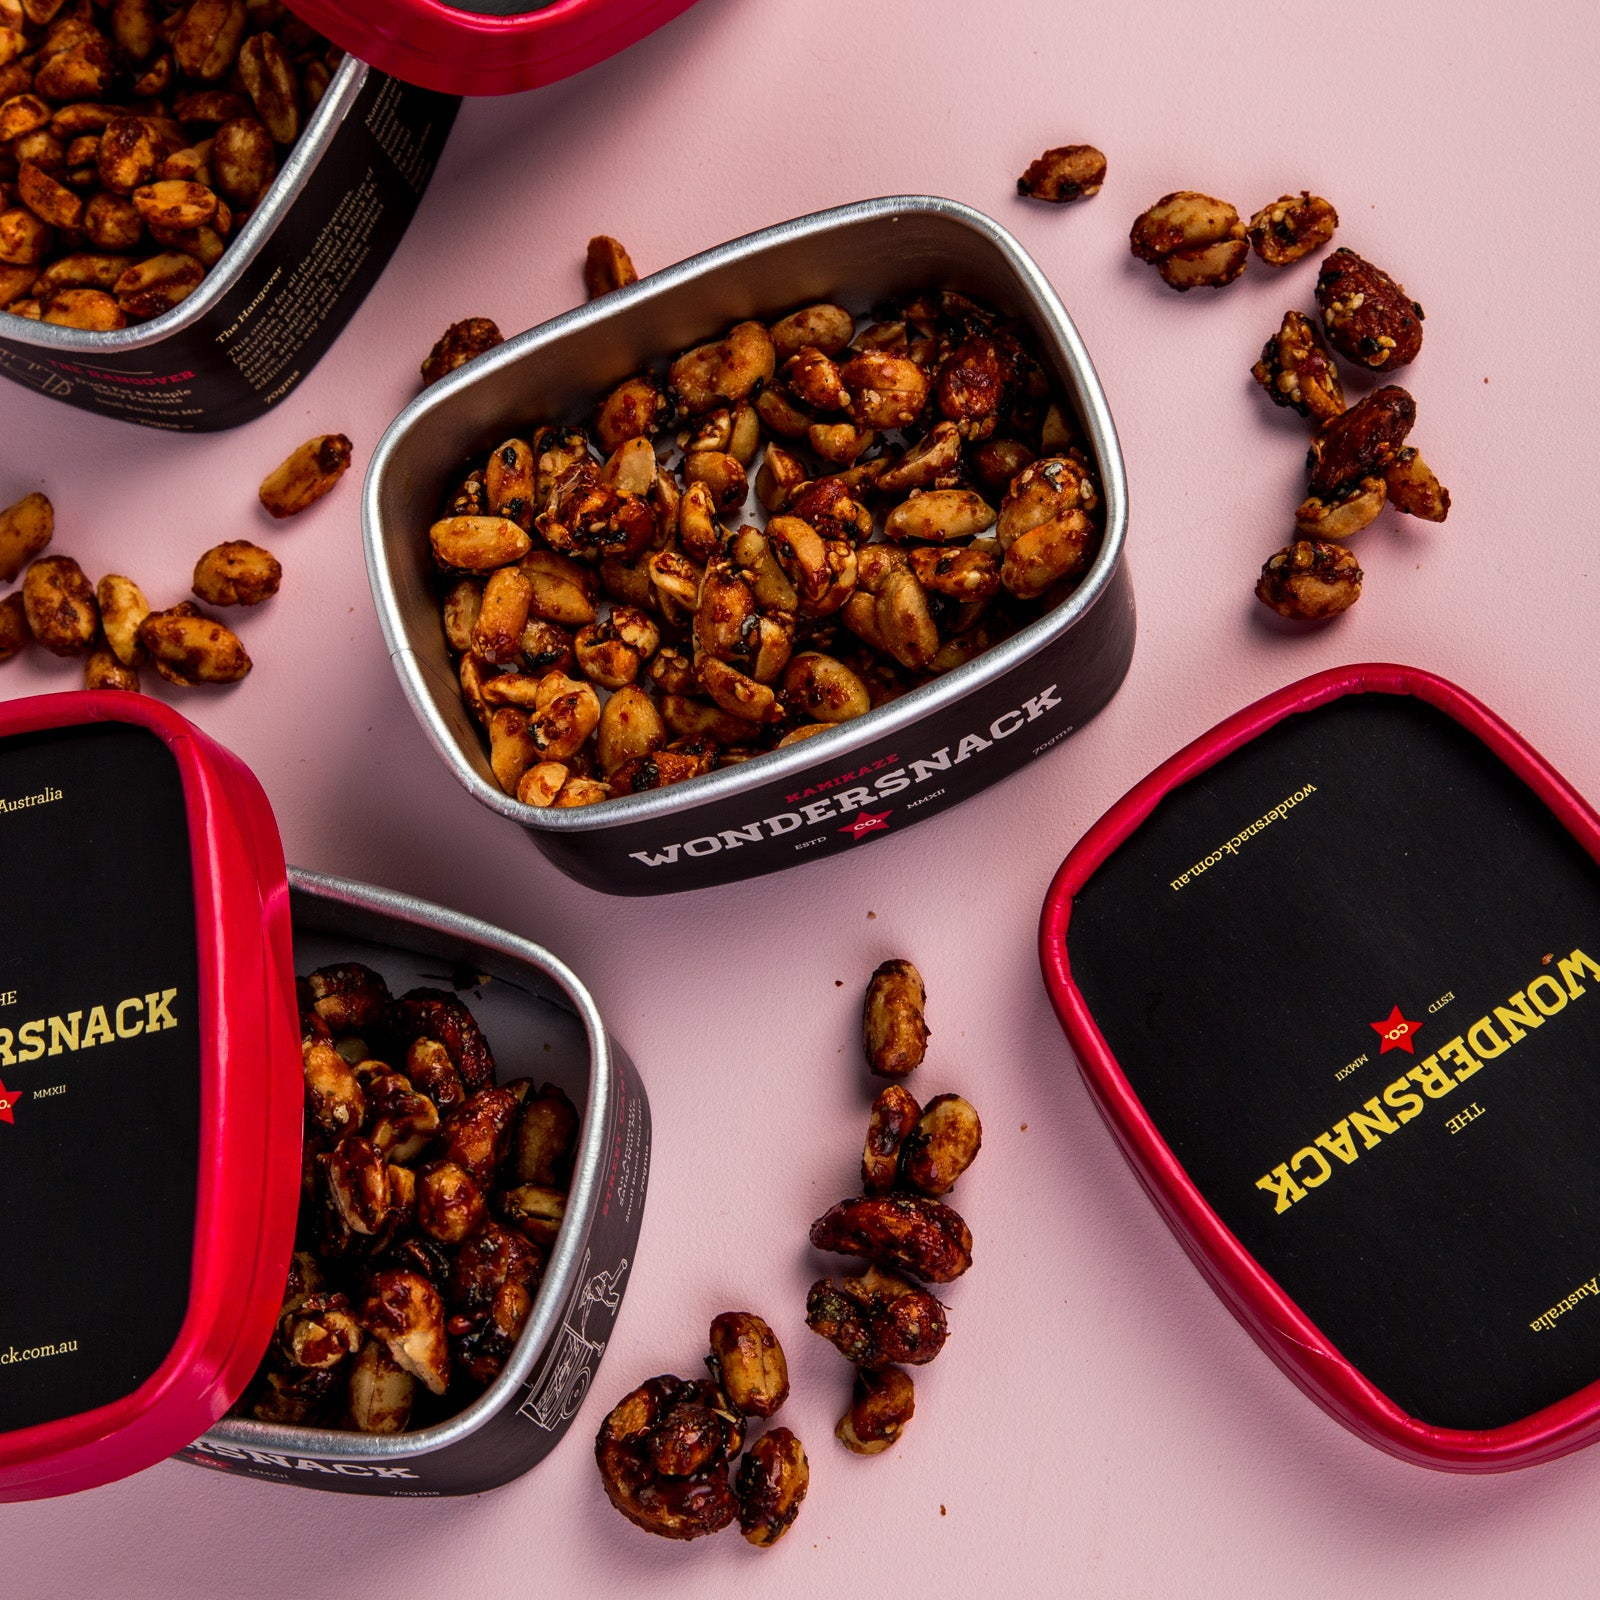 Wondersnack Co Premium Nuts (70g)